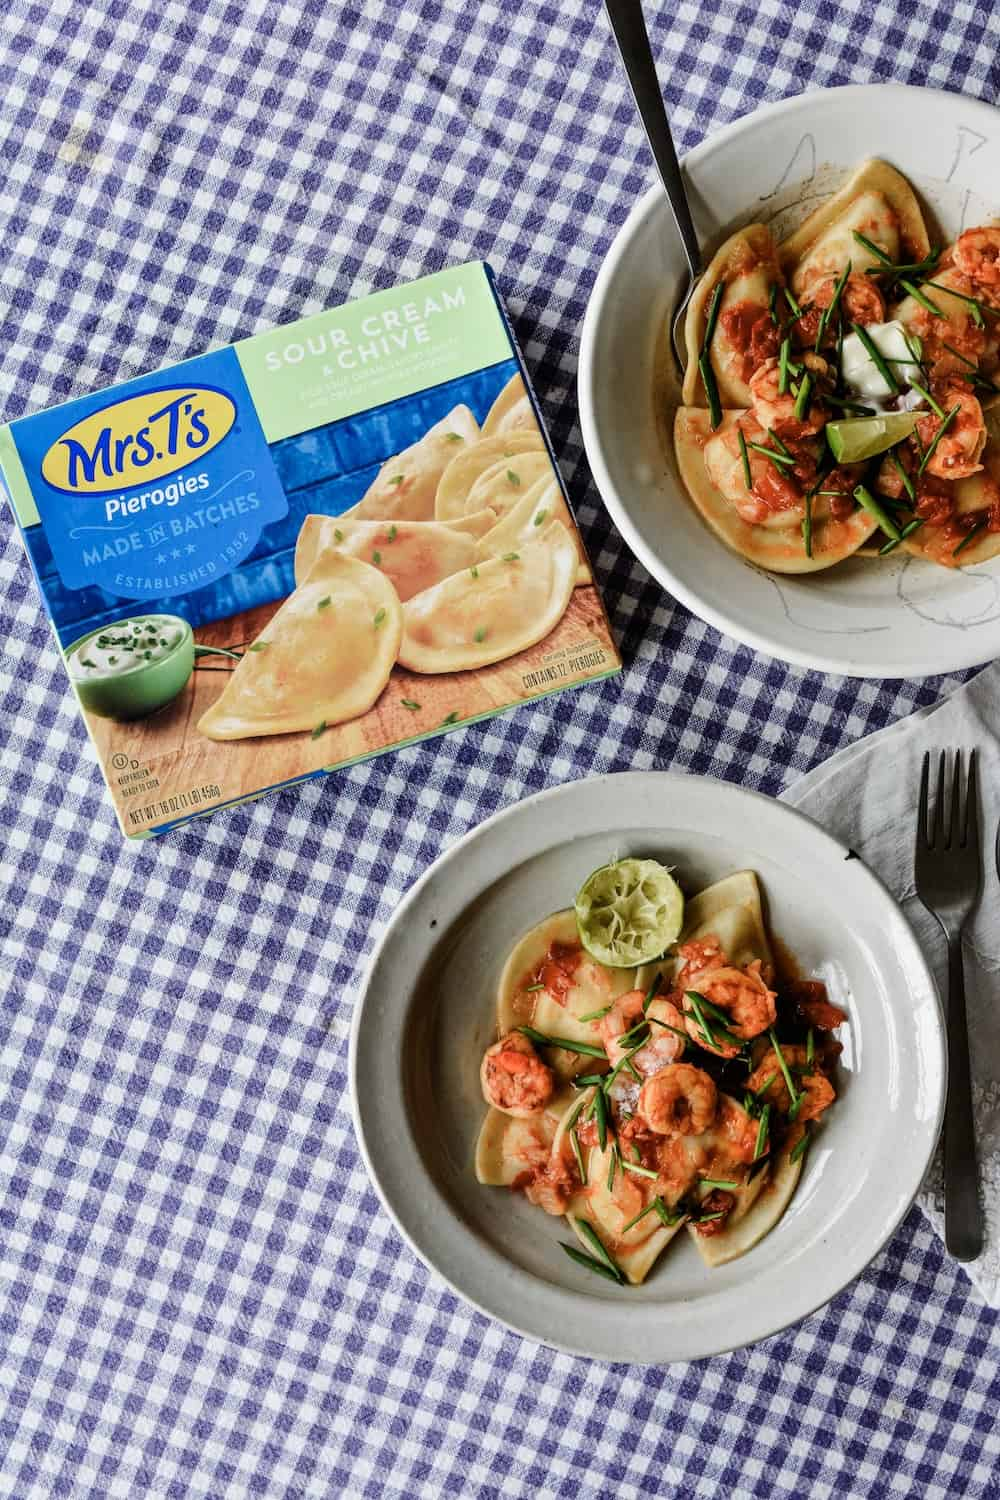 #ad| A quick delicious meal of the under 30 minutes variety, Tequila Lime Shrimp and Pierogies with @MrsTsPierogies. #holajalapeno #MrsTsPierogies #shrimp